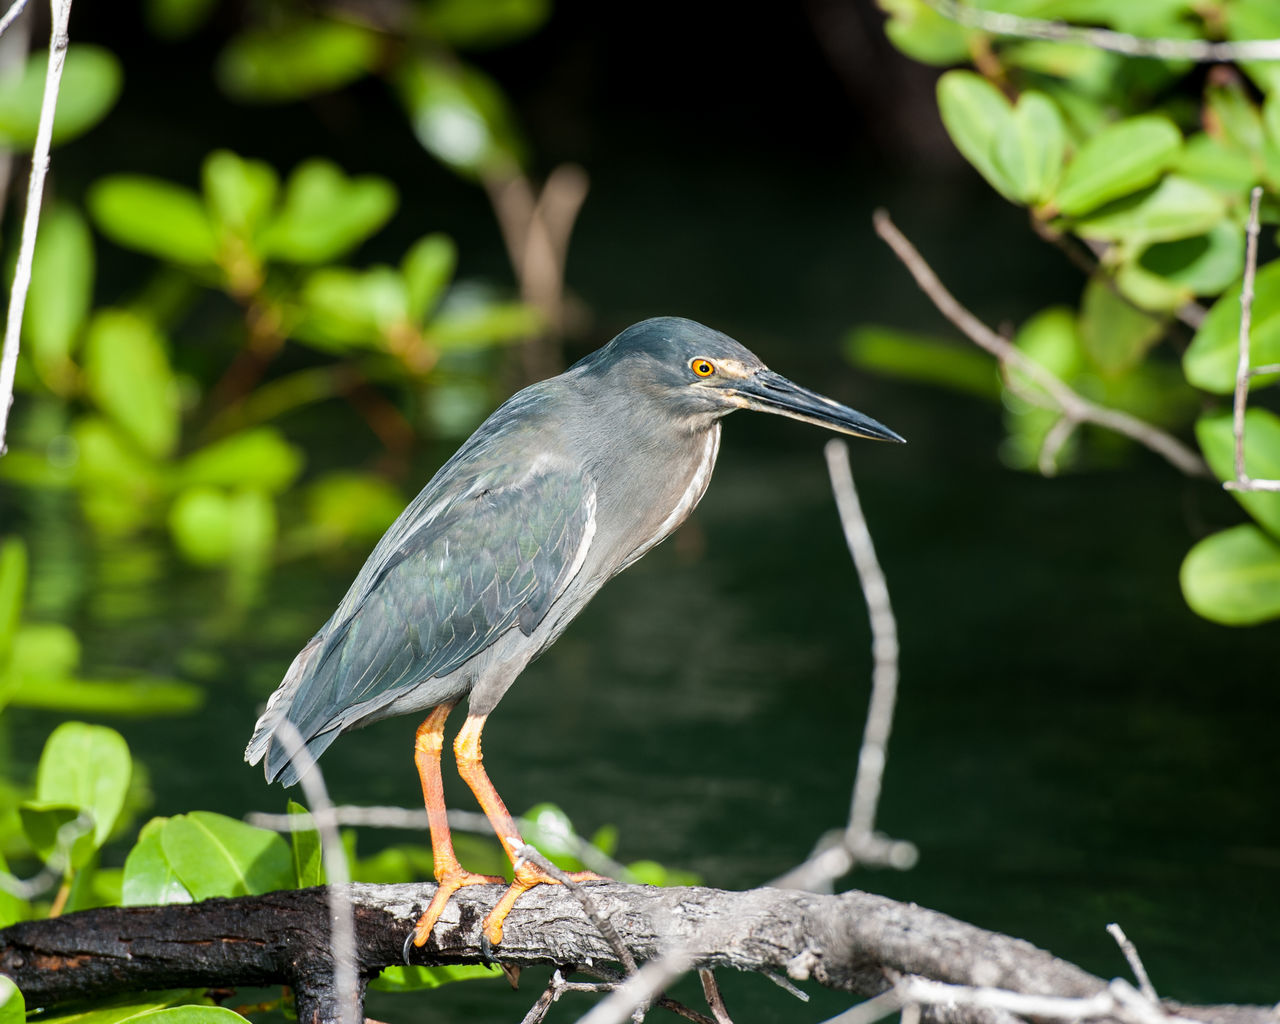 Close-Up Of Gray Heron Perching On Branch